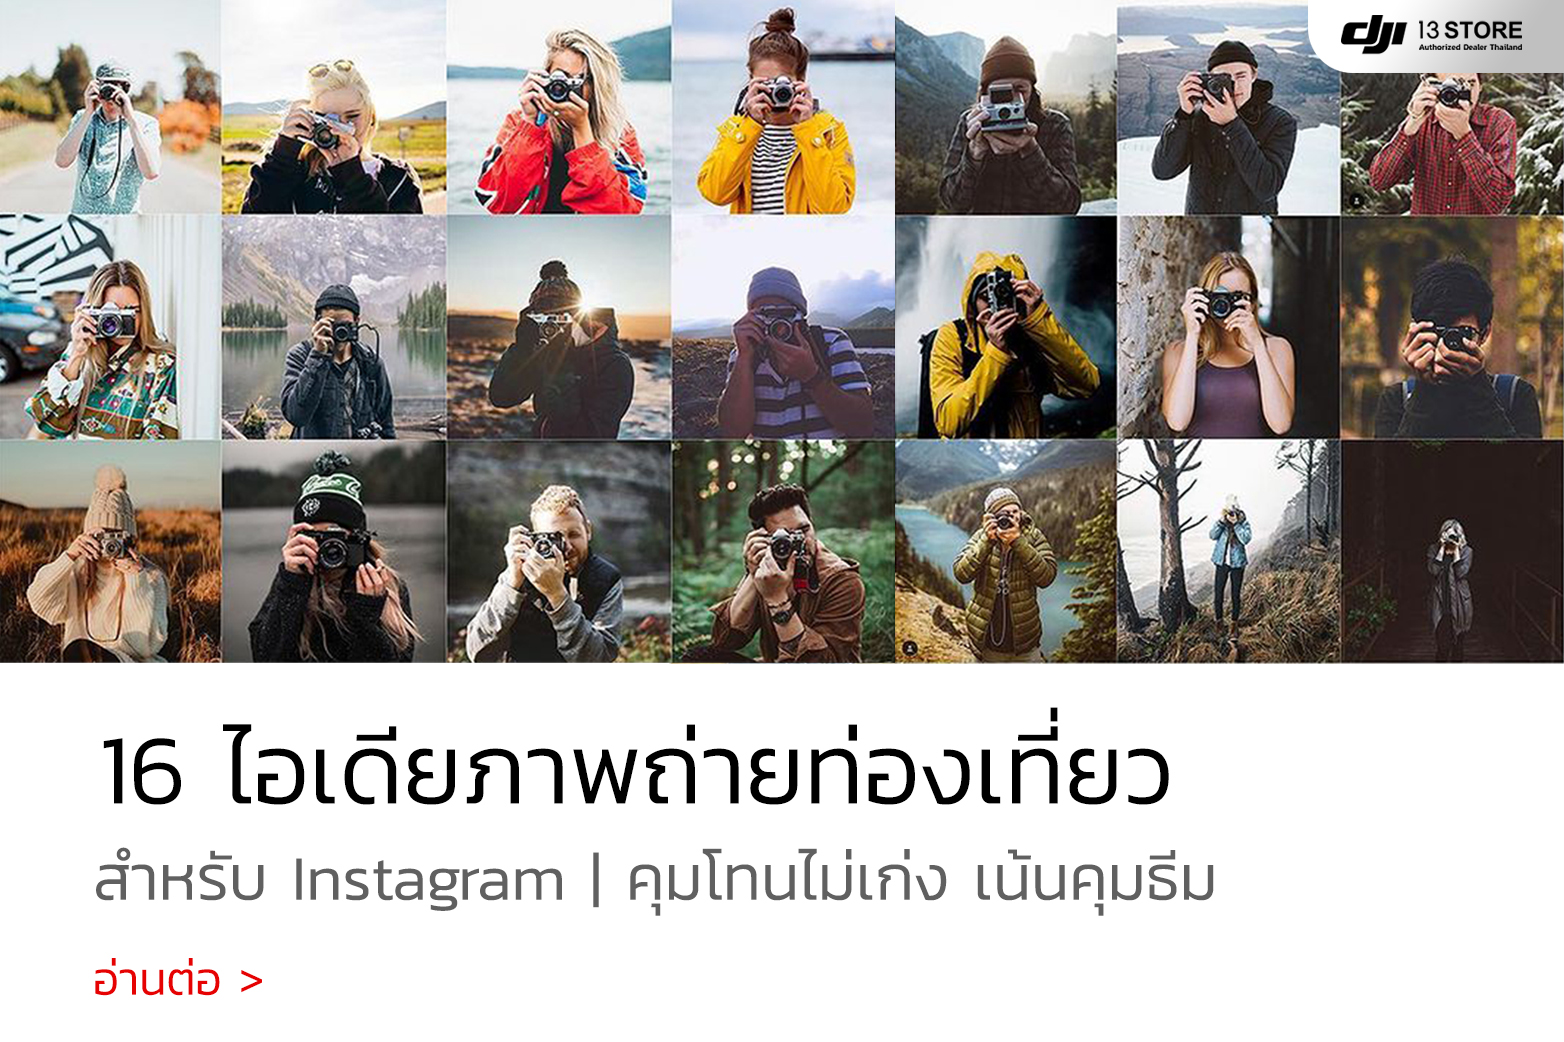 16 creative Instagram photo ideas 2021